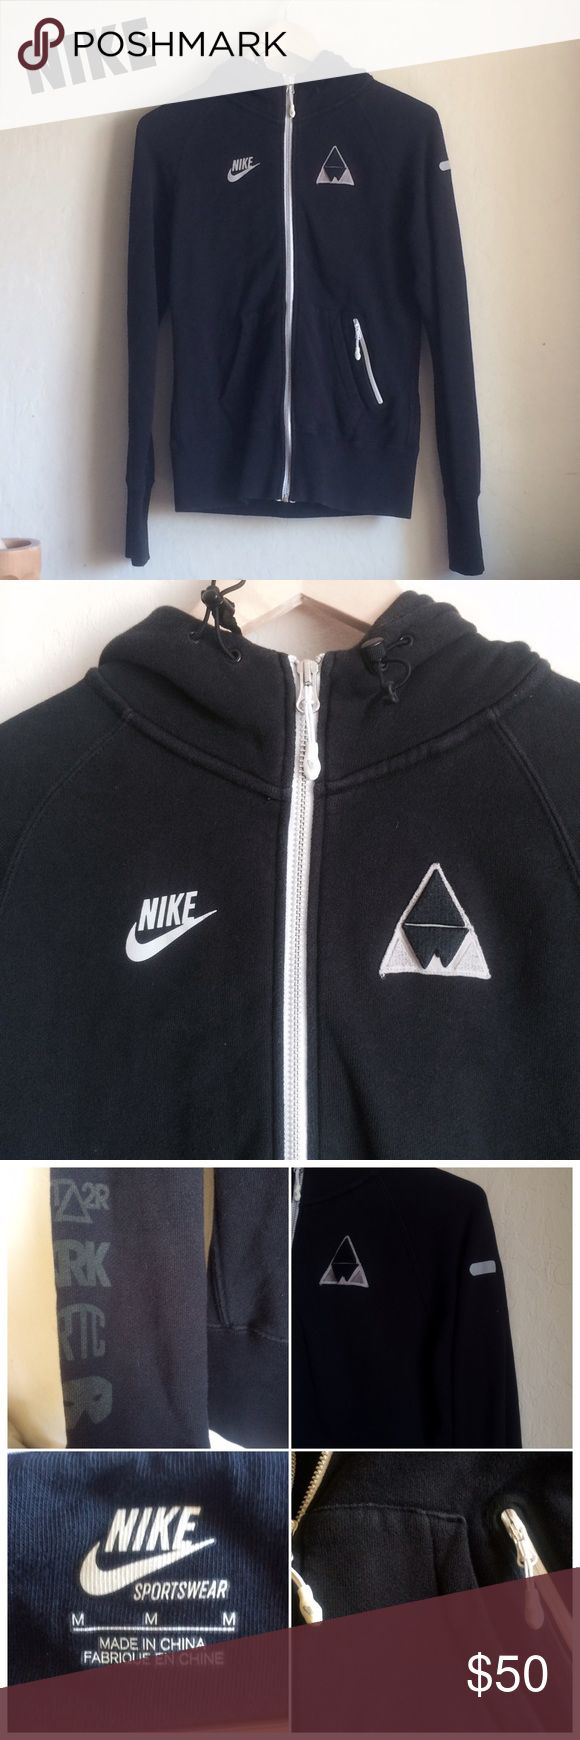 RARE Nike Zip Up Hoodie ACCEPTING OFFERS!!. No low ballers. No trades. Used but good condition. One of my FAVORITE jackets but I don't use it anymore. It does have minor/light fading to the entire hoodie so please take that into consideration. No rips or holes. This jacket is no longer sold anywhere. Size medium but can fit a small. Cute with leggings and sneakers. Retail $110. $30 on Ⓜ️ Nike Tops Sweatshirts & Hoodies